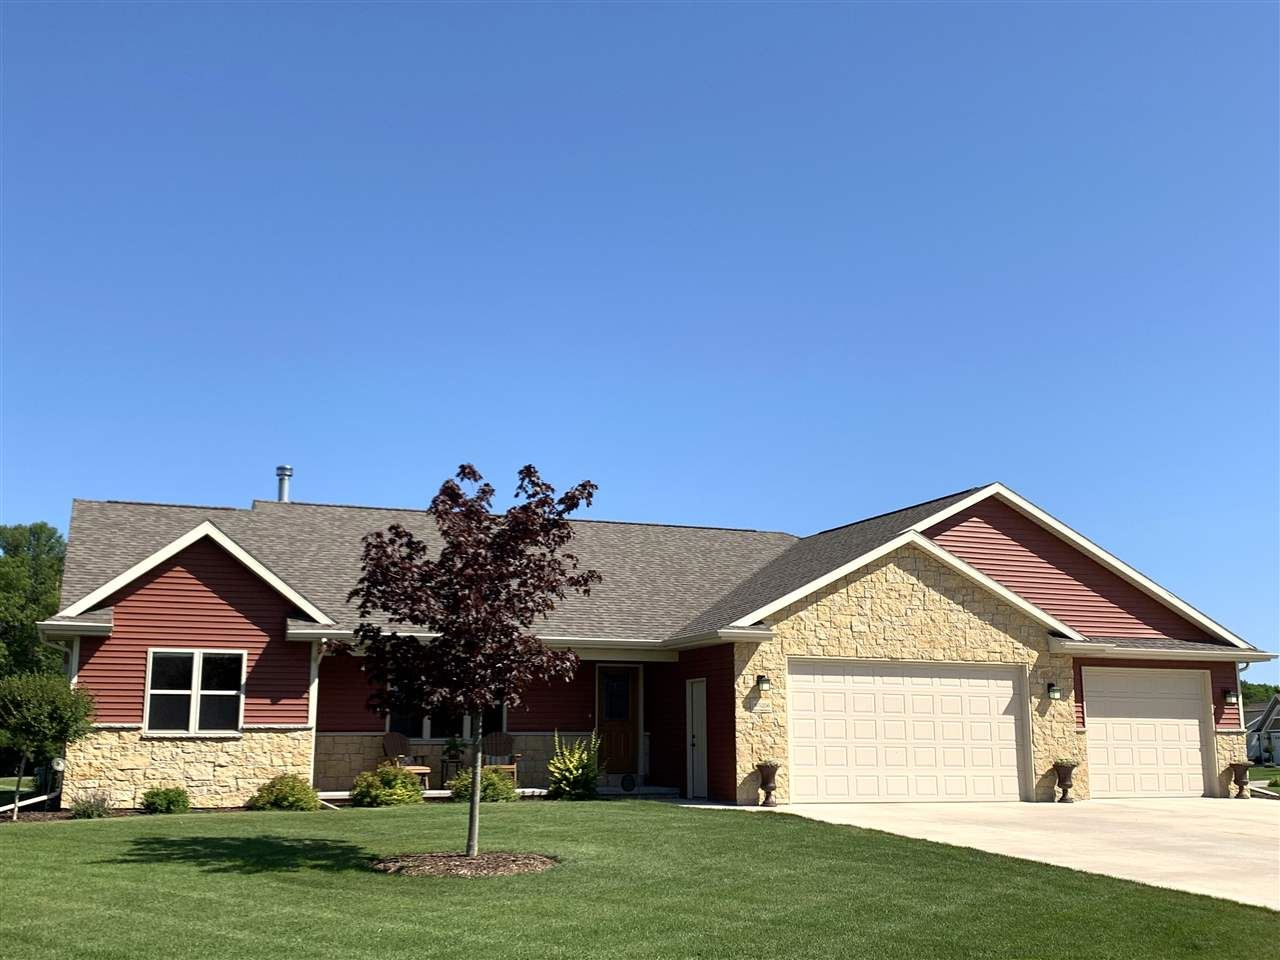 Photo for W5256 NATURES WAY Drive, SHERWOOD, WI 54169 (MLS # 50209289)